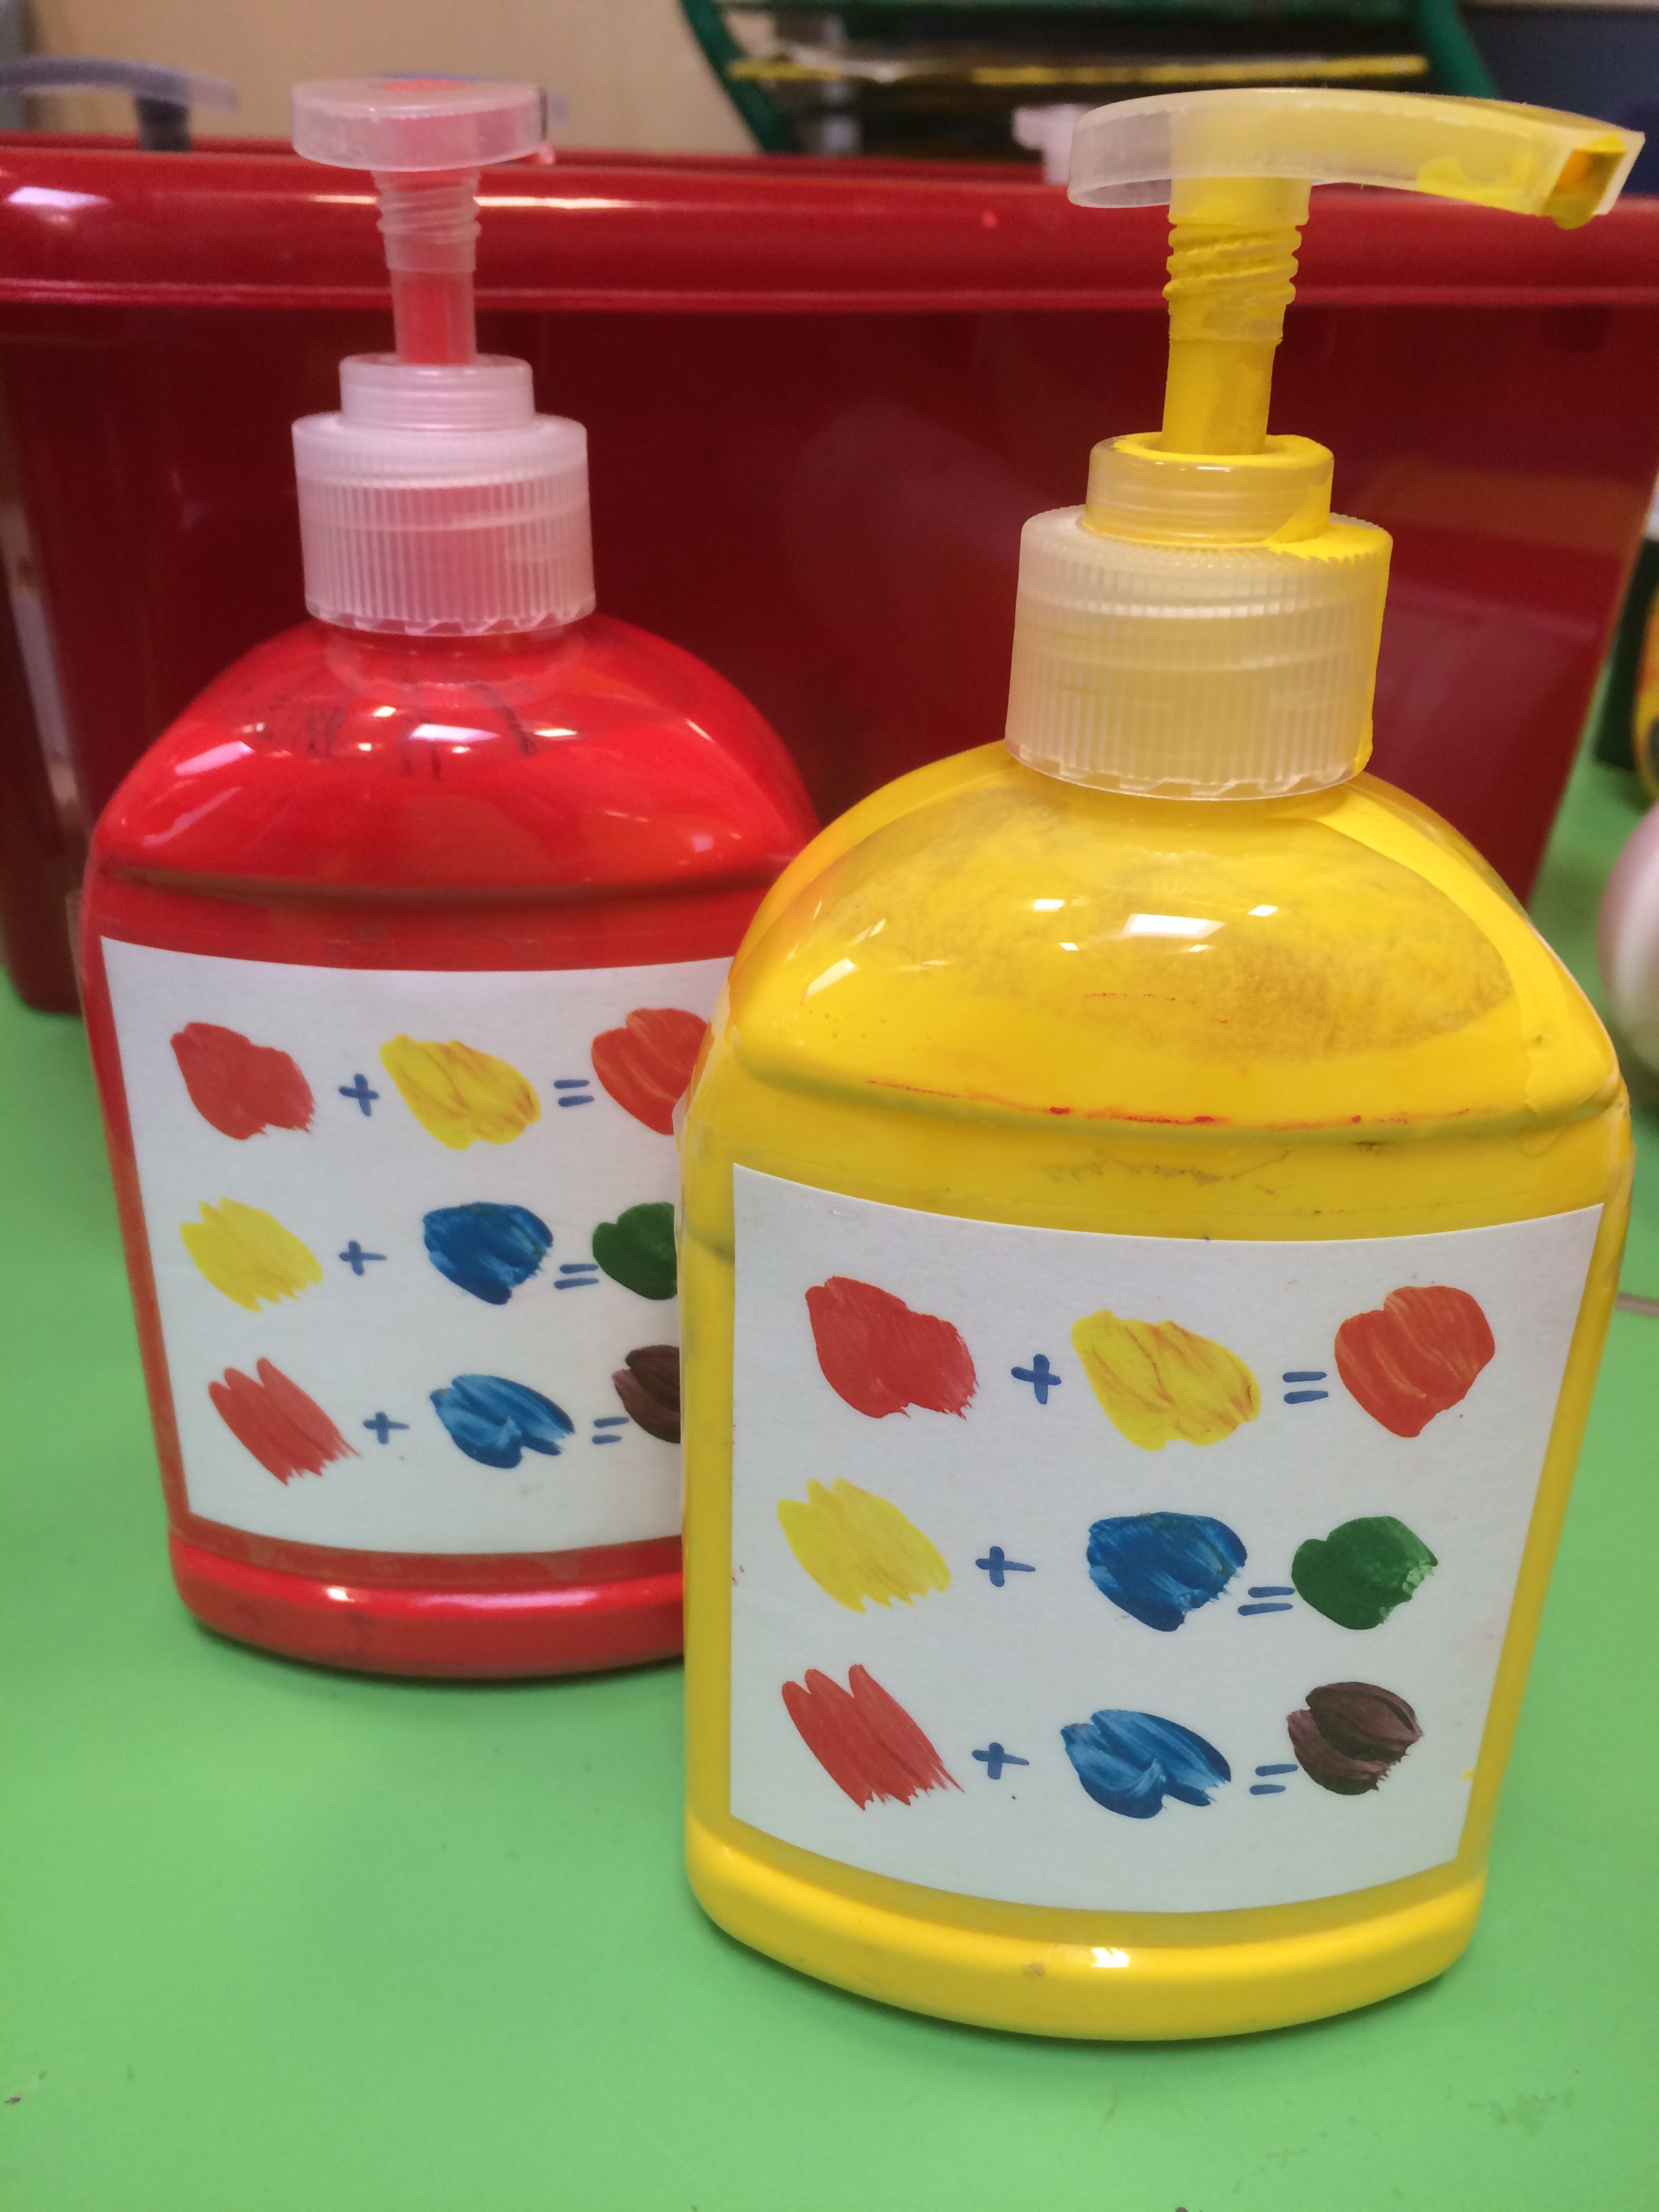 colour mixing activities eyfs : Eyfs For Easy Access To Paint For Colour Mixing I Added The Labels To Remind